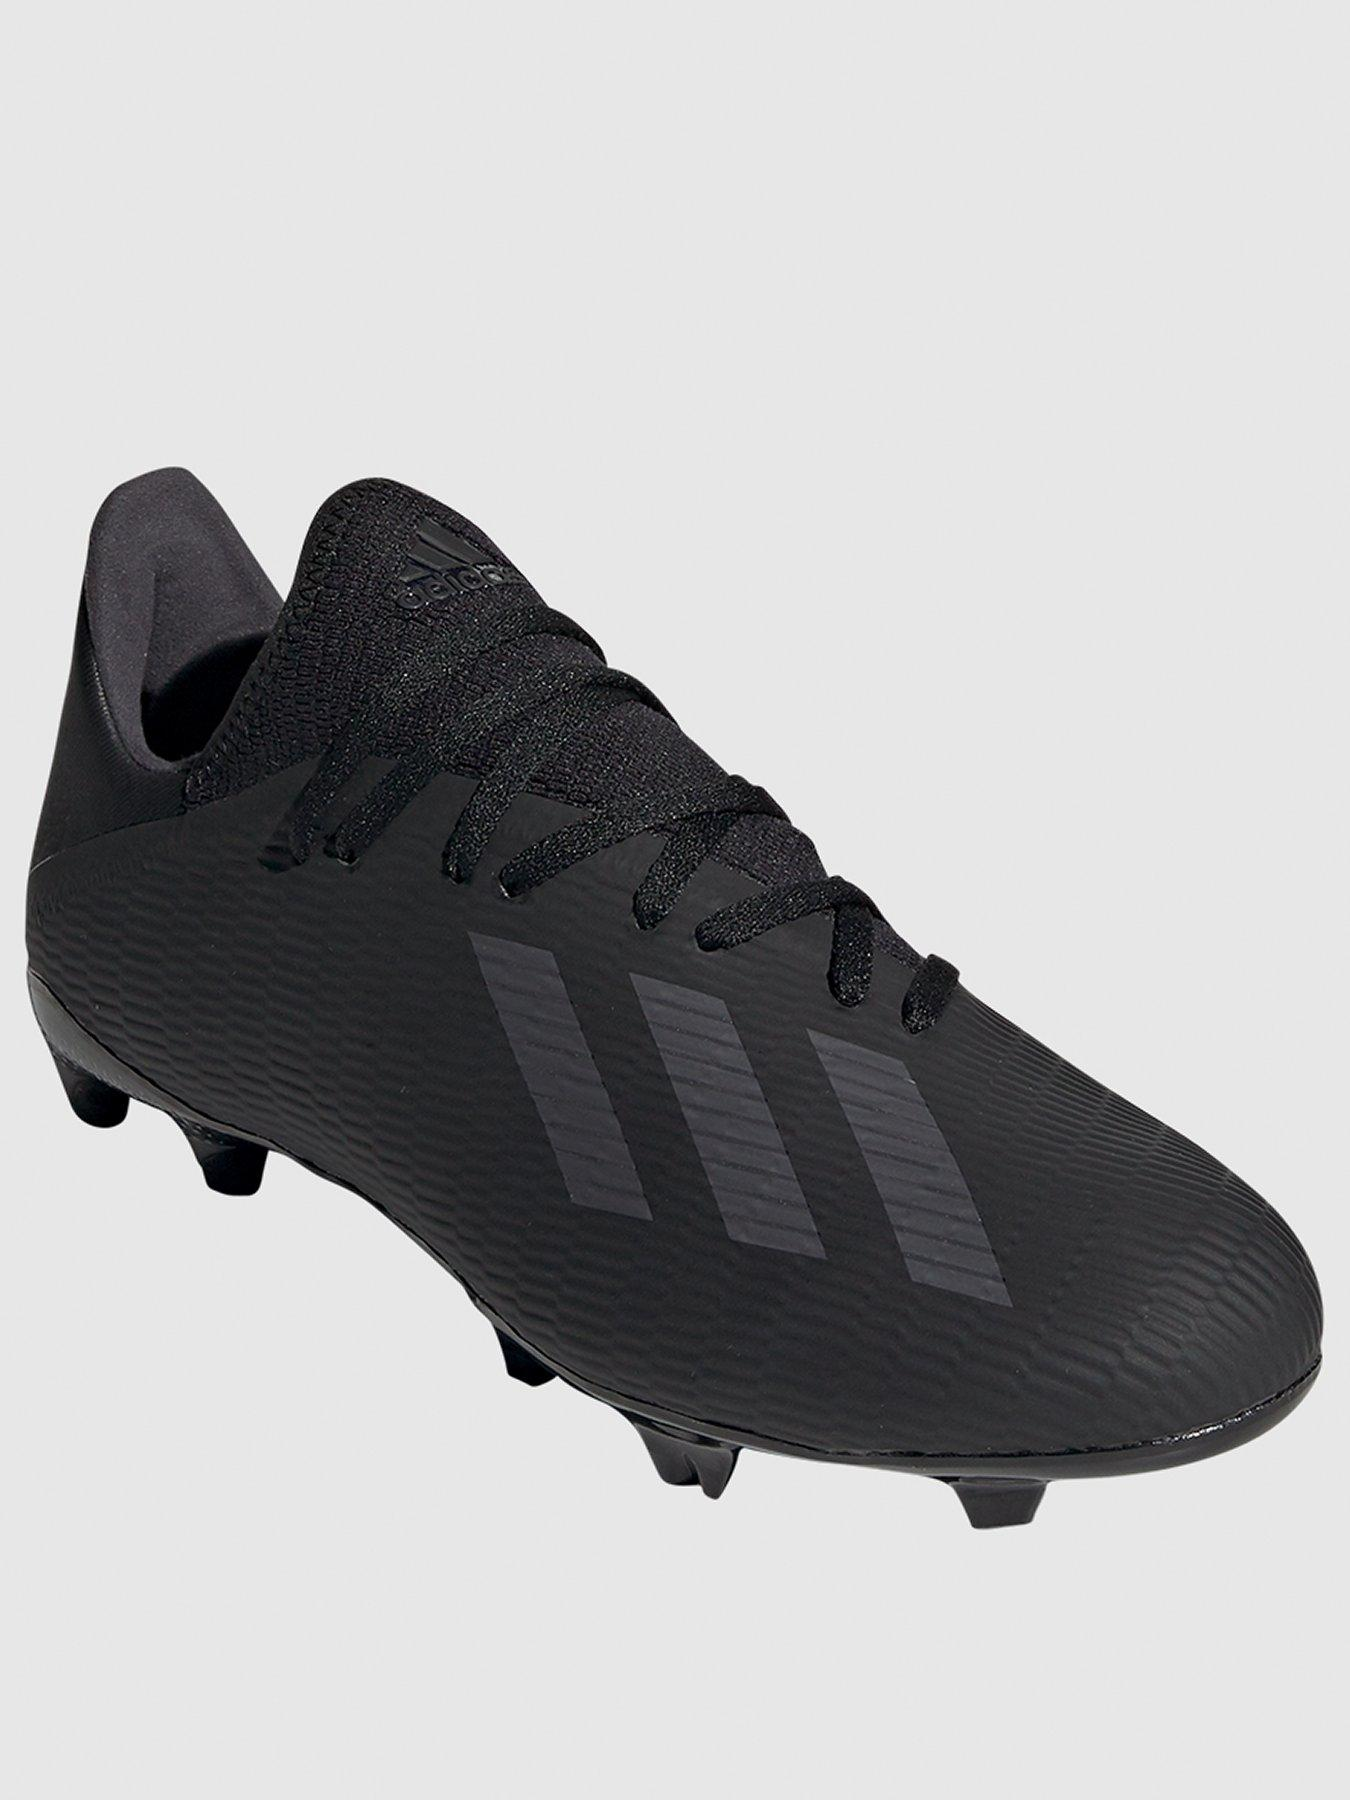 Mens Football Boots | Football Trainers | Very.co.uk